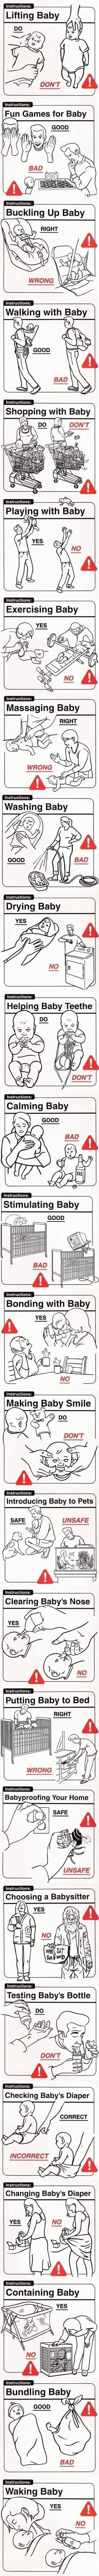 Note to self - baby care